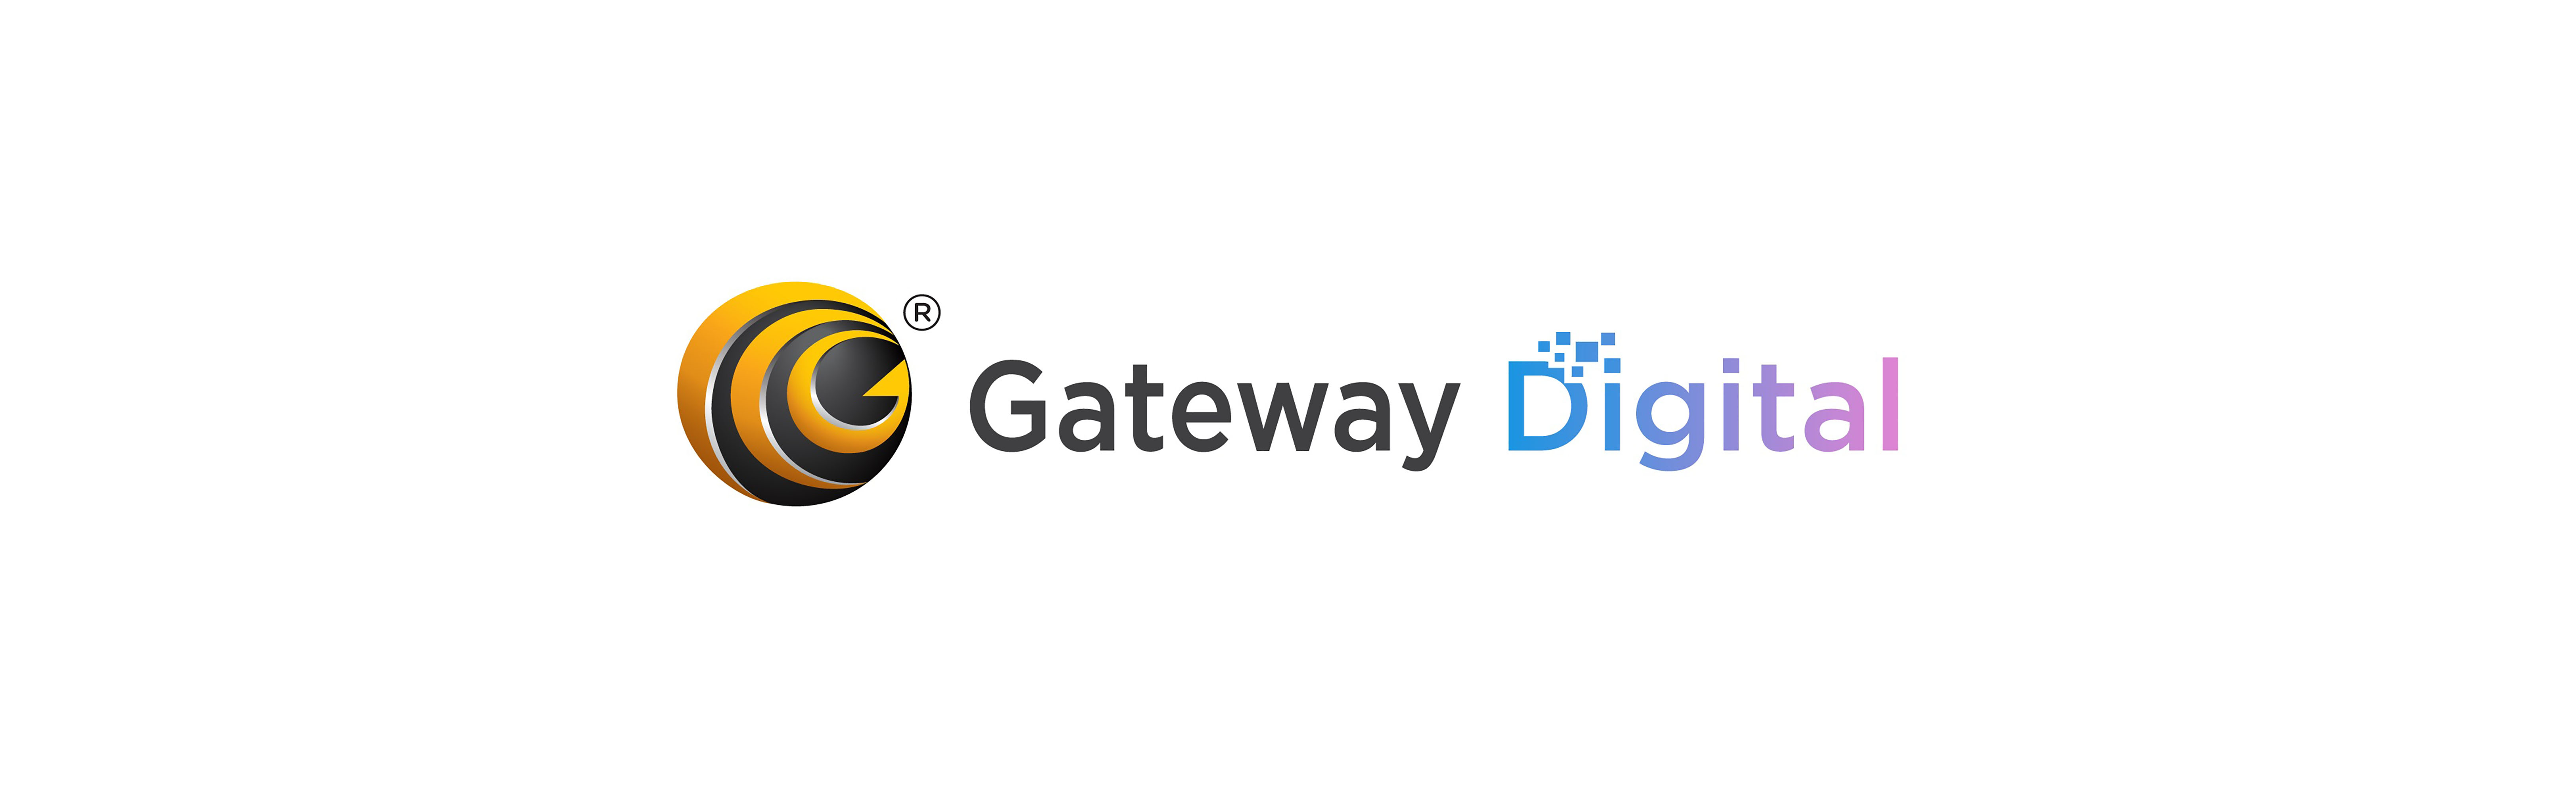 Gateway Digital AS